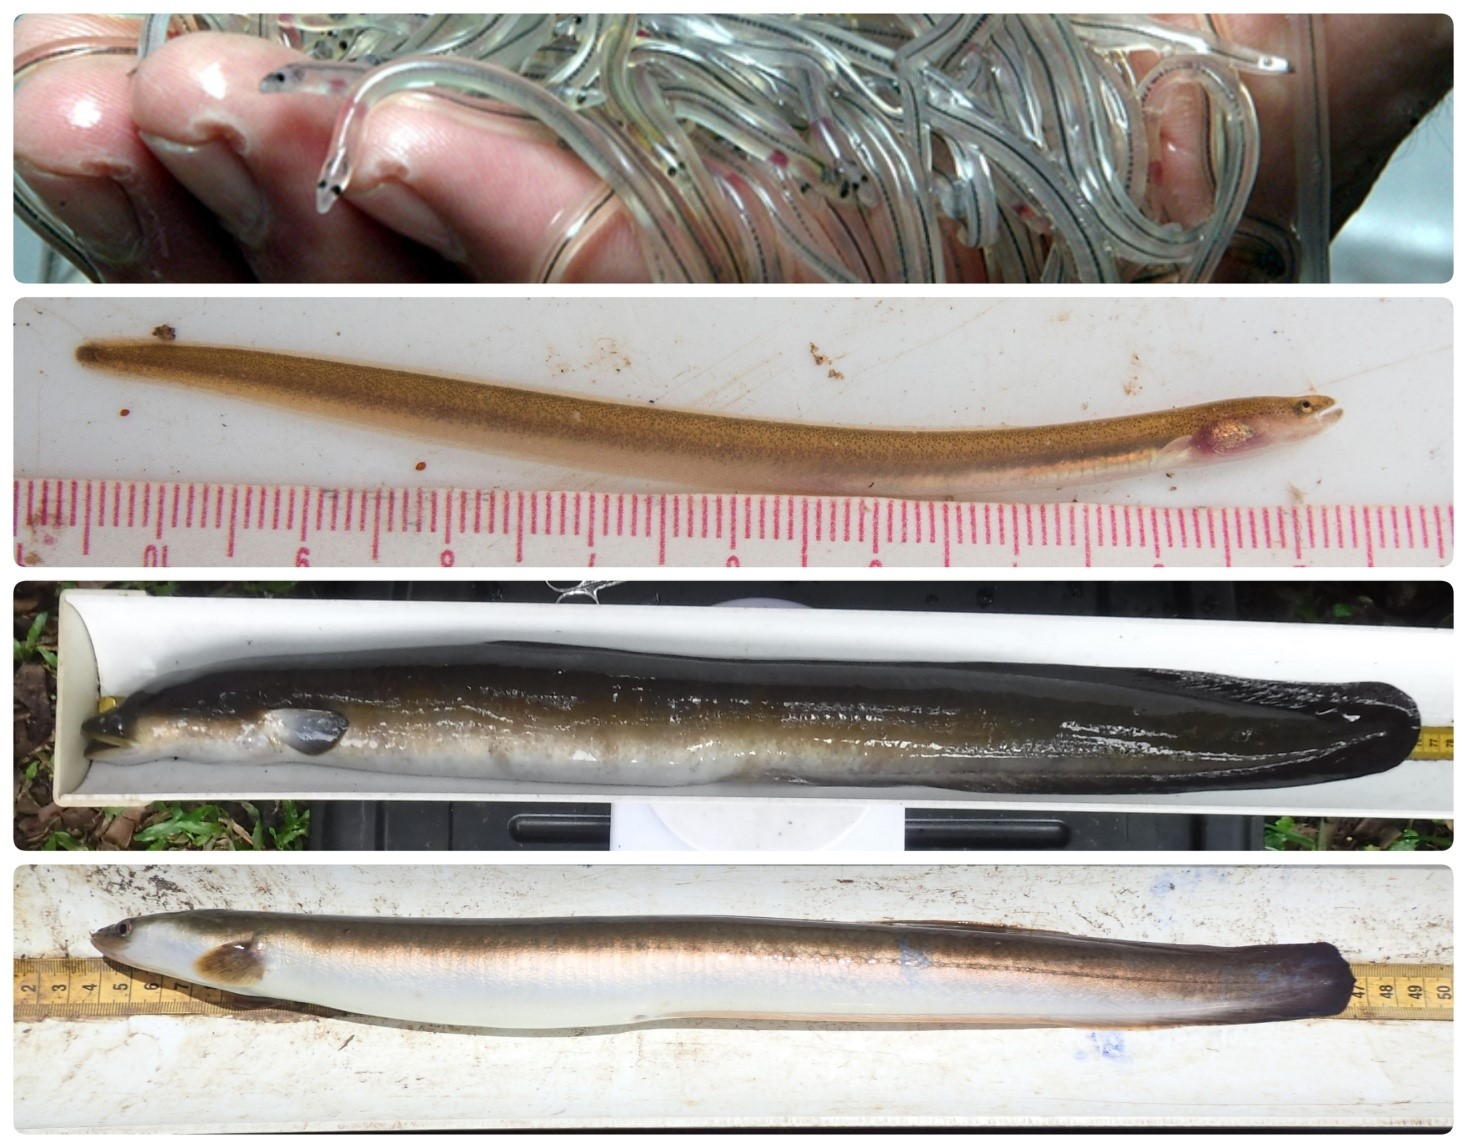 Life stage of an eel. From top to bottom : glass eels (source Bournemouth Global Environmental Solutions) when they reach the coast; elver of A. mossambica as they migrate up the rivers, A. mossambica 'yellow eel' stage when they live in freshwater; A. mossambica 'silver eel' when they transform (bright white/silver coloration and big eyes) before they migrate back to the sea.